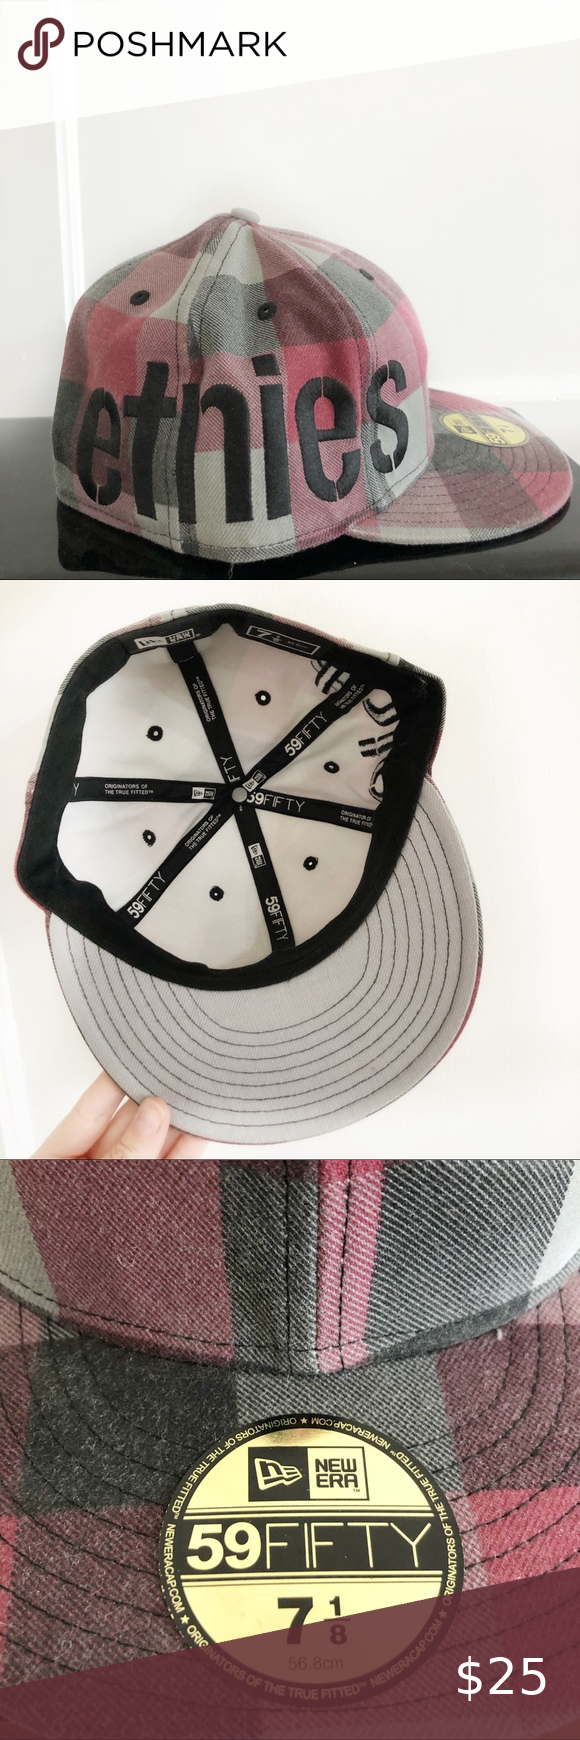 Etnies Fitted Plaid Skate Hat New Era 59fifty In 2021 Skate Hats New Era Hats New Era Beanie